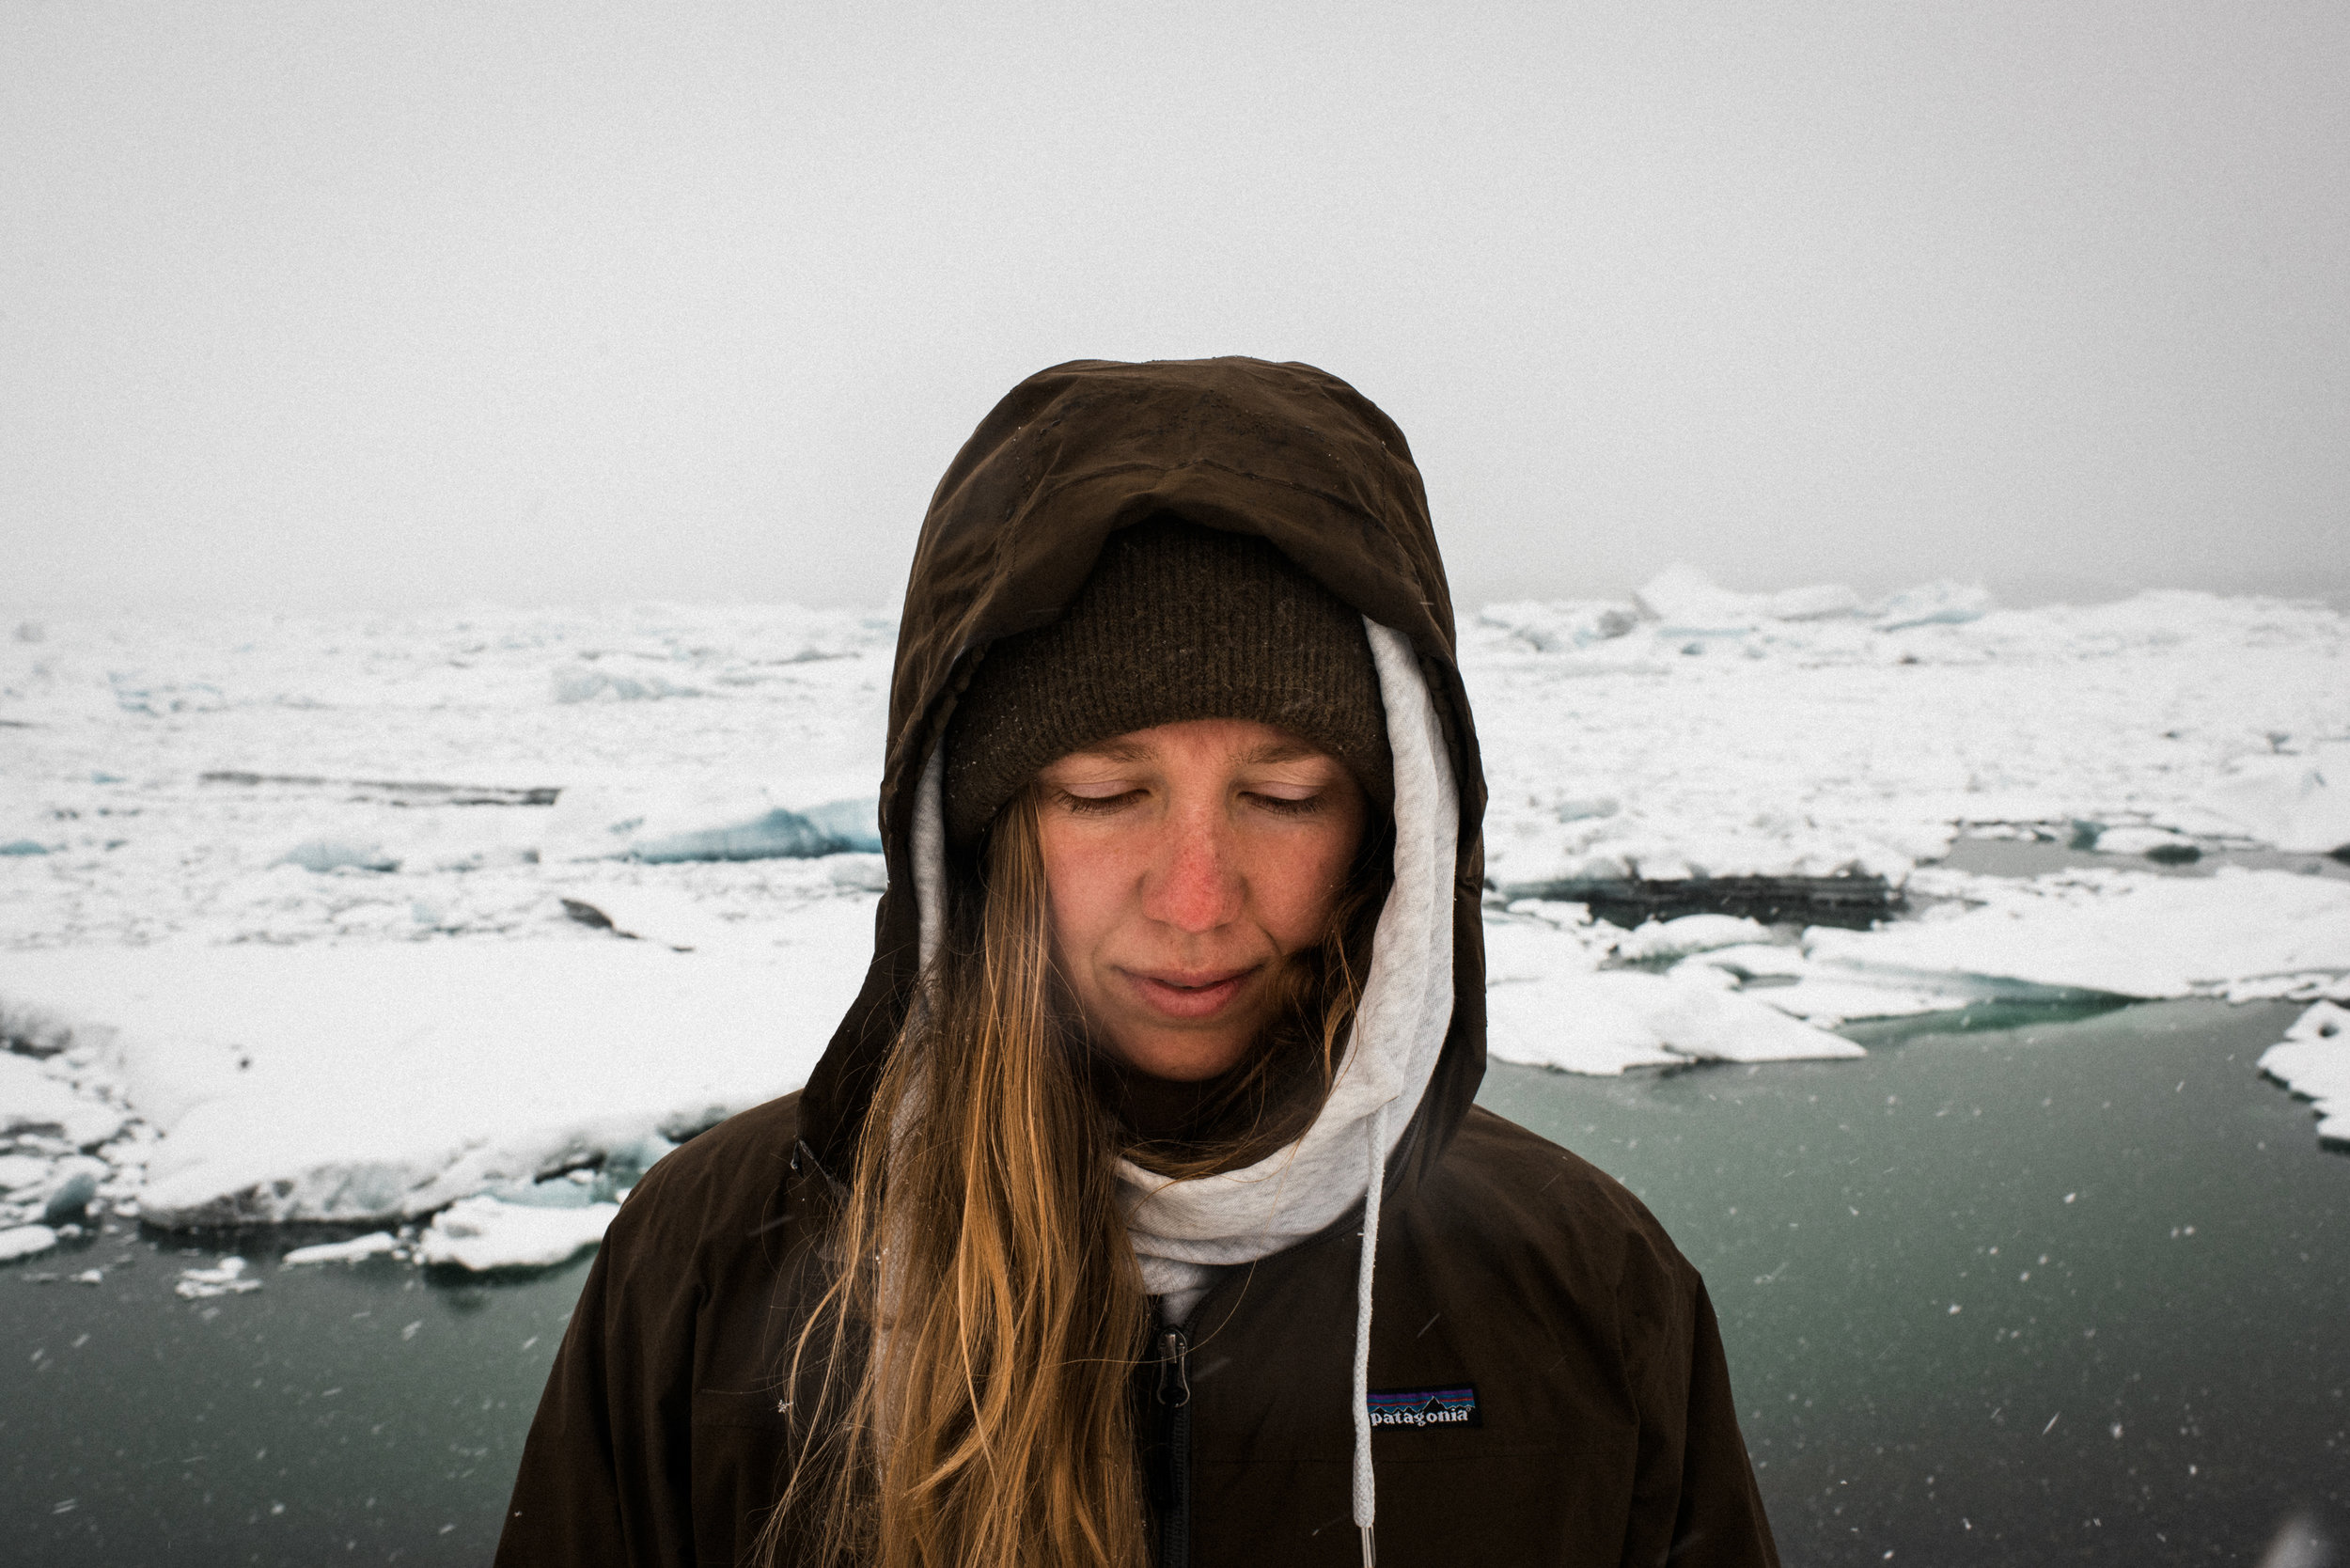 ICELAND_WOMAN_PHOTOGRAPHER_TARASHUPE_OUTDOOR_PHOTOGRAPHY_095.jpg